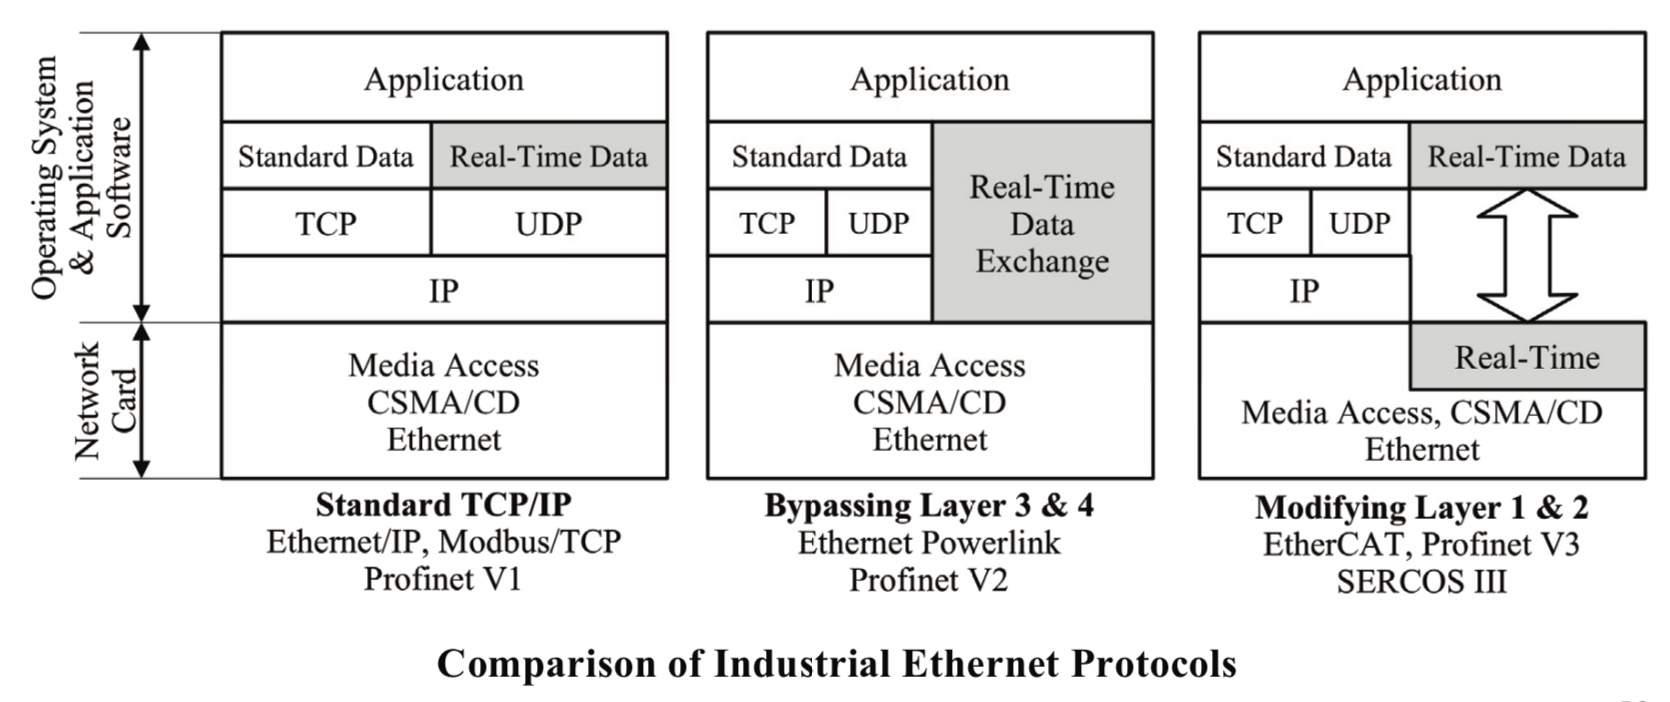 Comparison of Industrial Ethernet Protocols